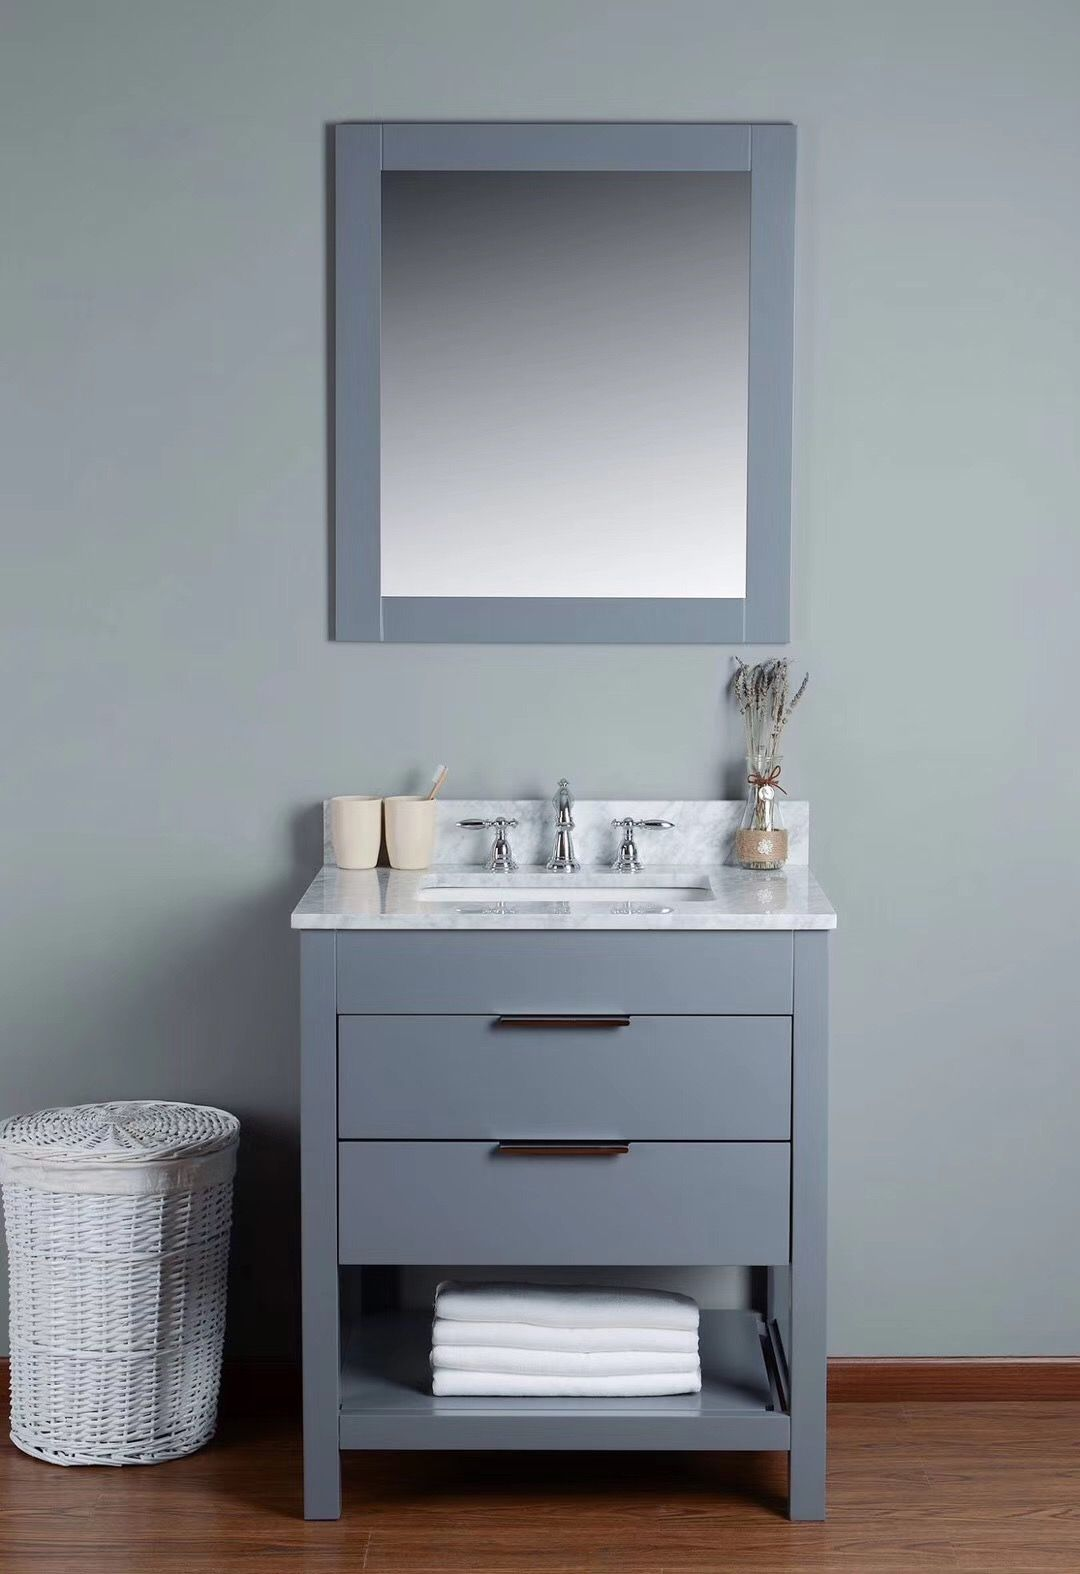 28inch Bathroom Vanity With Nature Marble Top And Frame Mirror Price 380usd Bathroom Vanity Led Mirror Bathroom Vanity